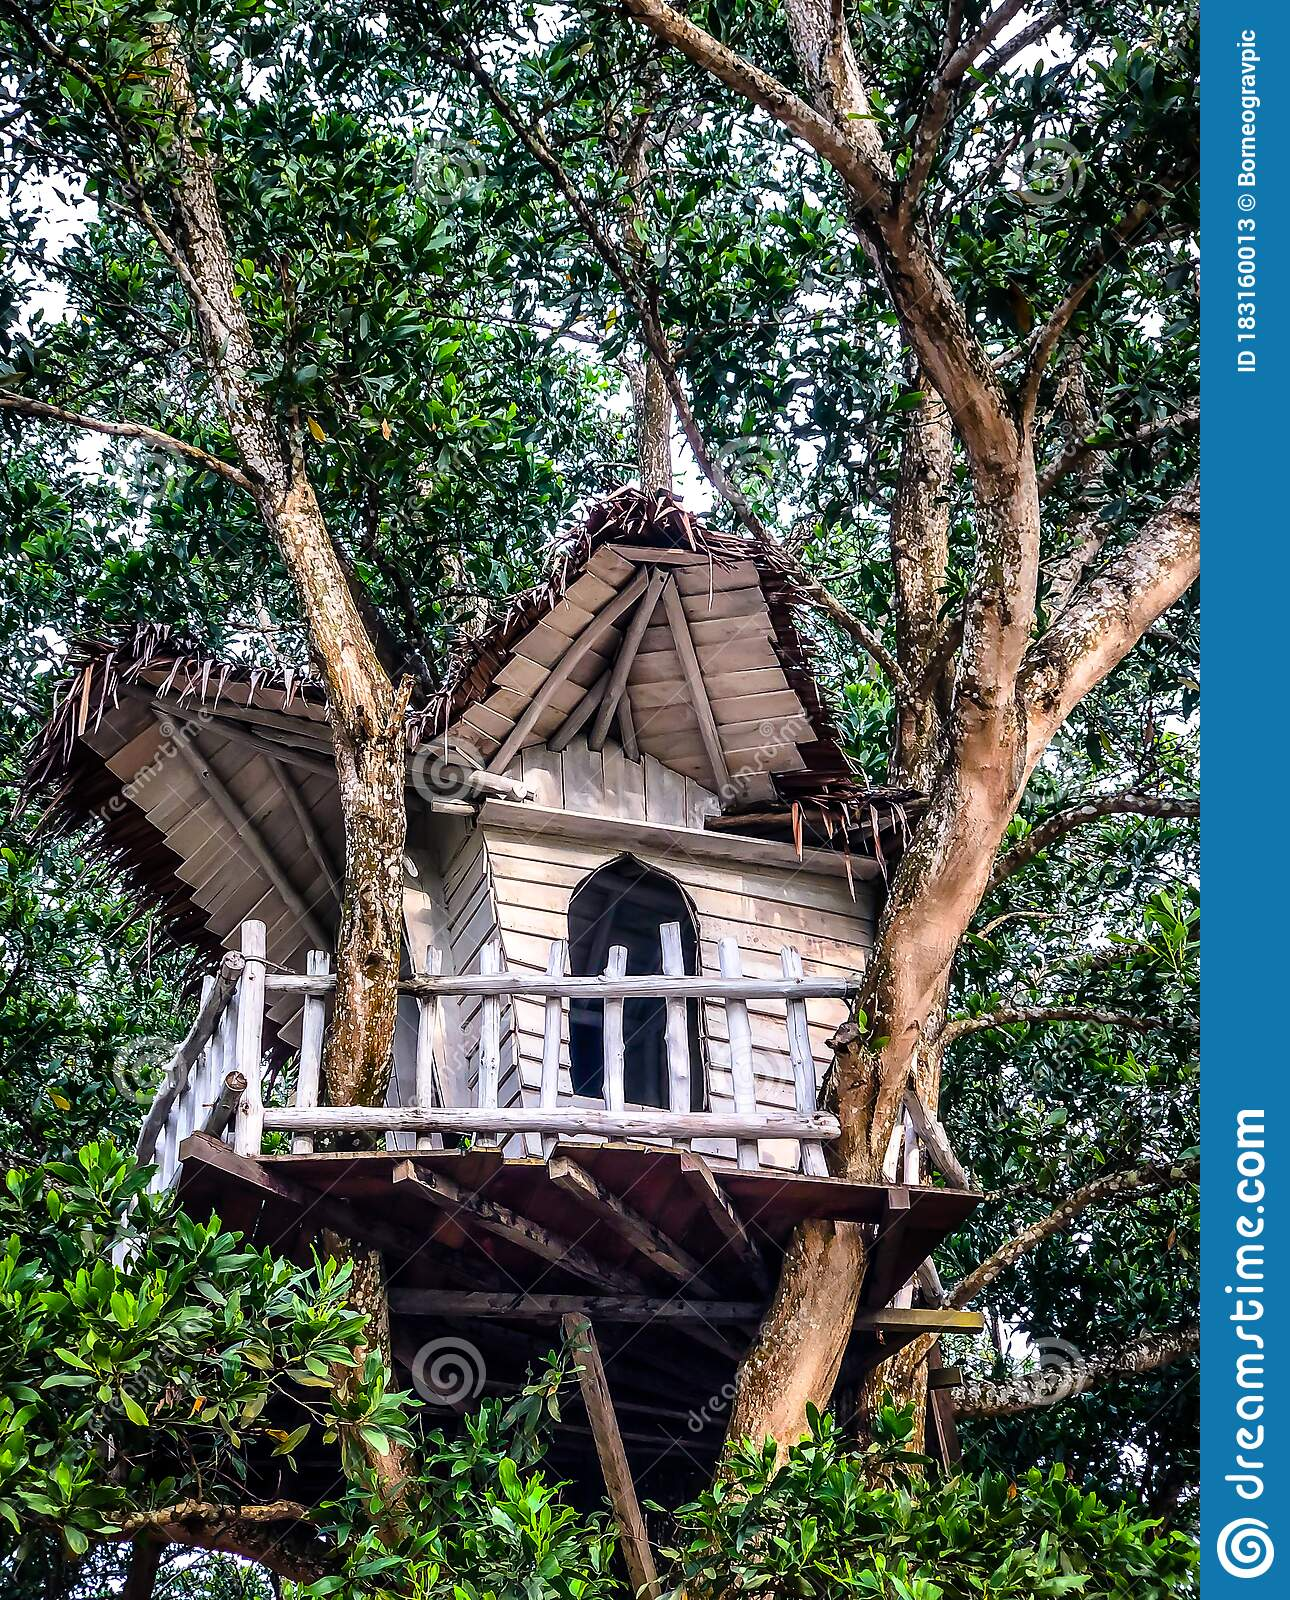 274 Kids Treehouse Photos Free Royalty Free Stock Photos From Dreamstime